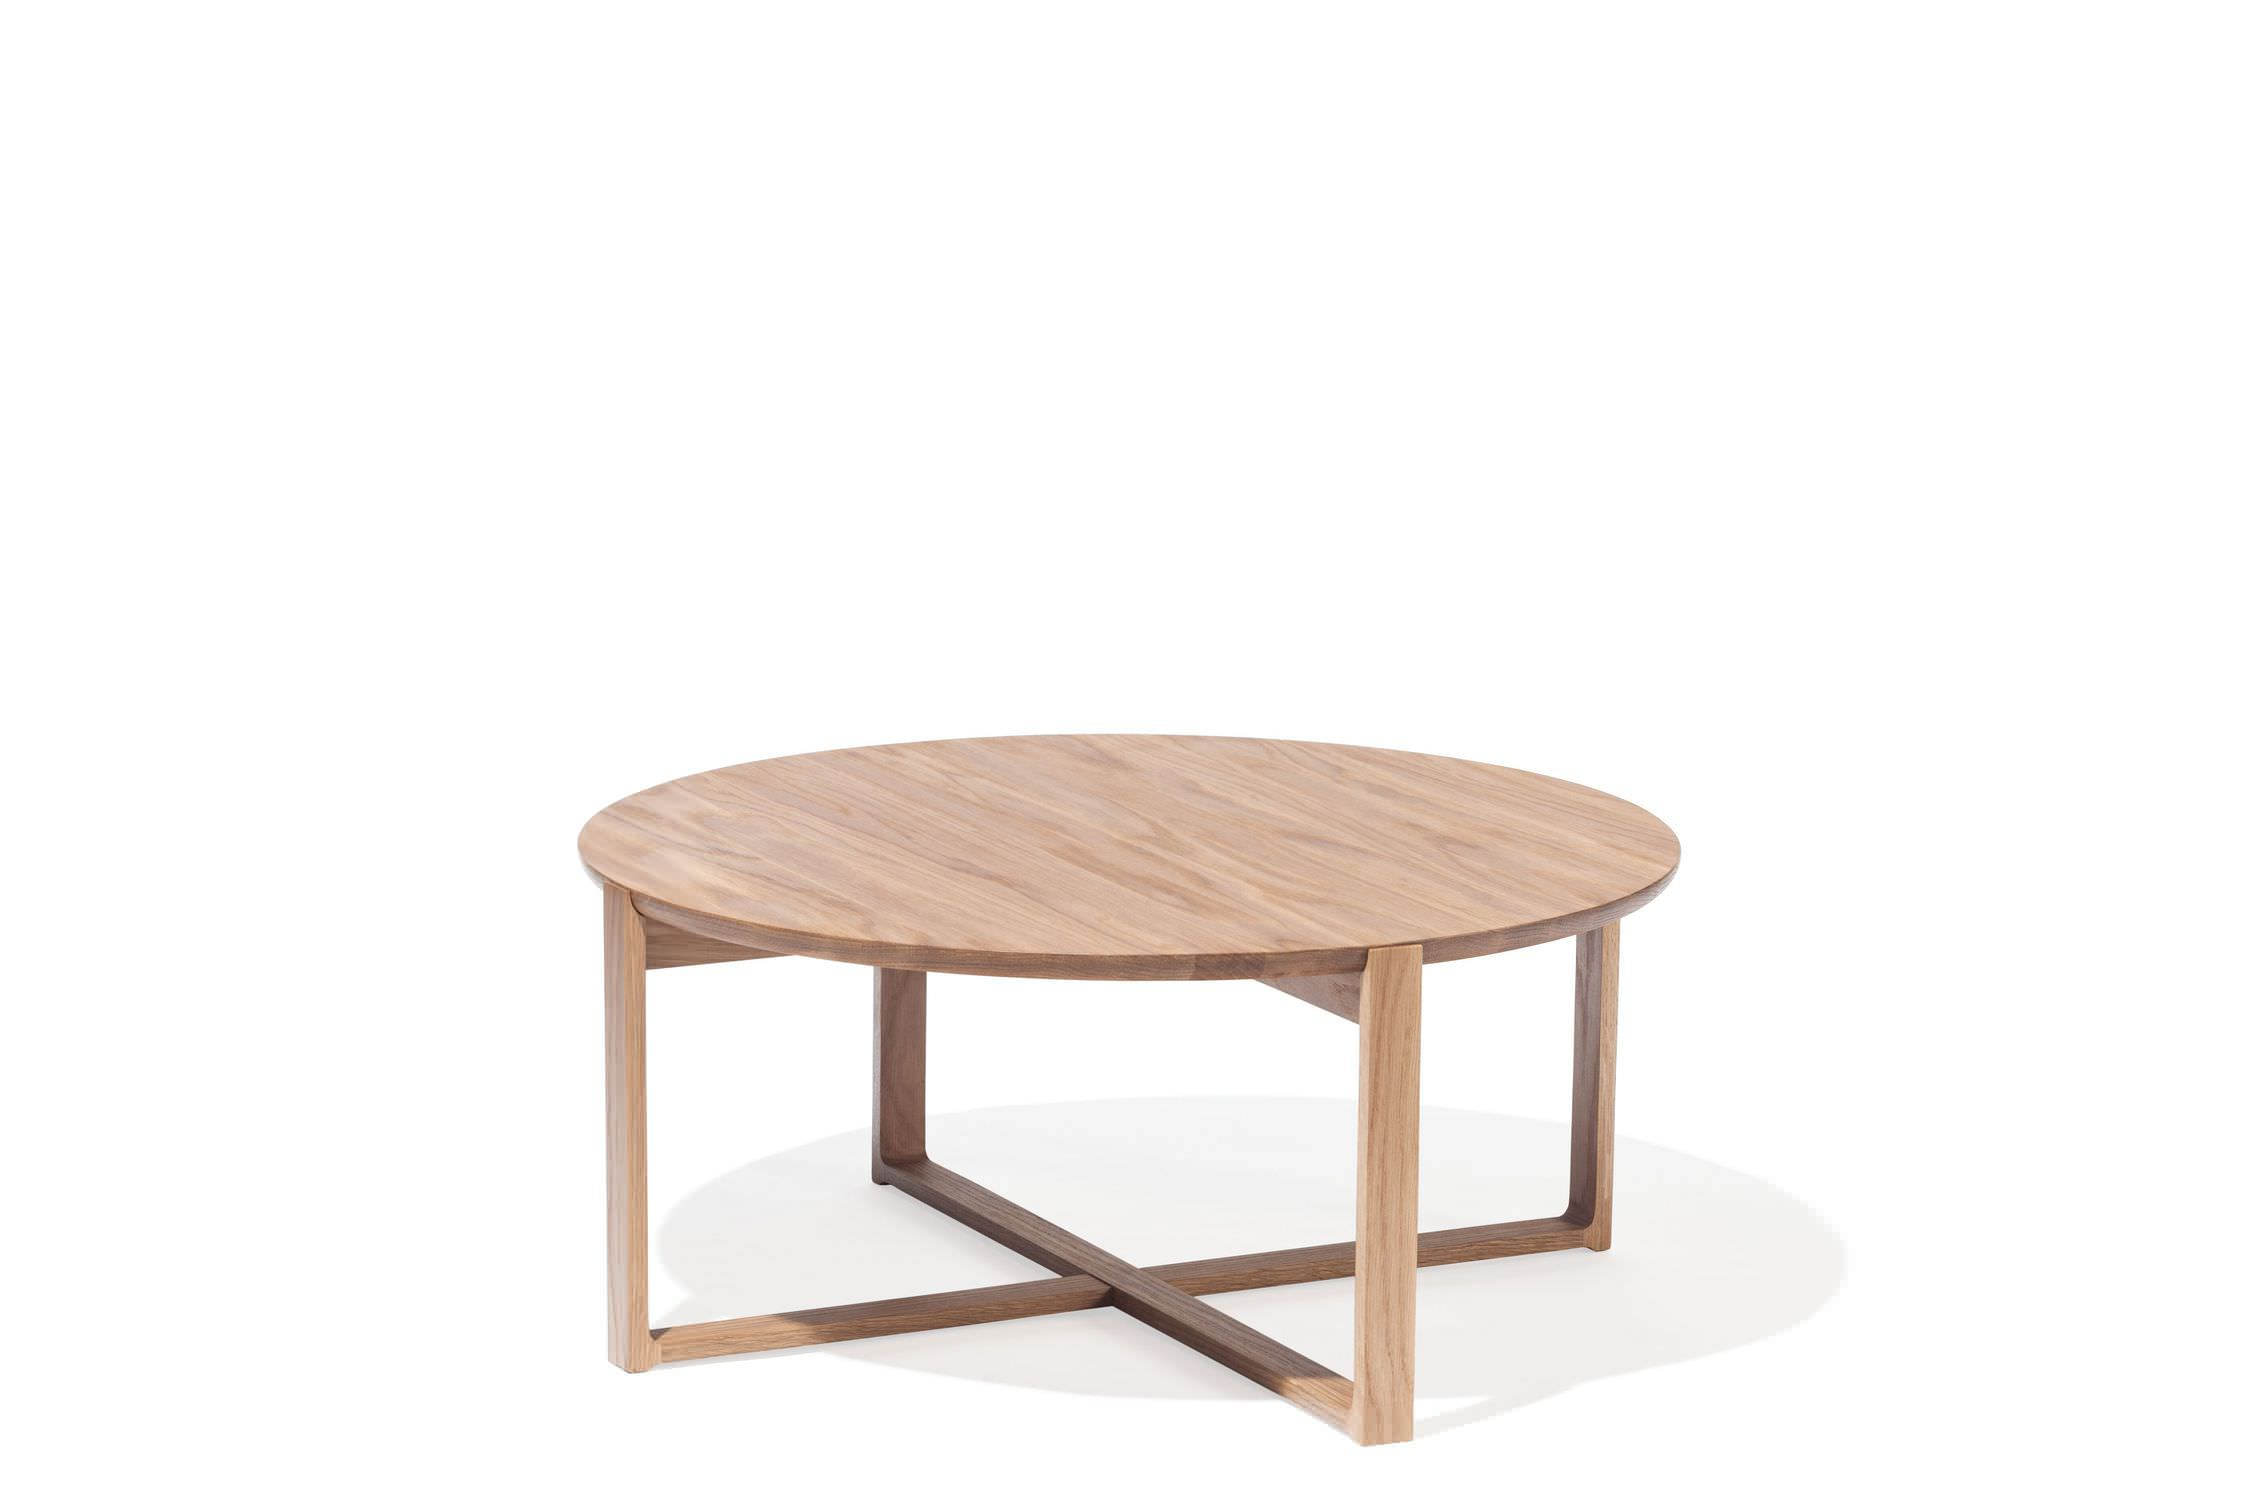 Table basse ronde chene 2 id es de d coration int rieure for Table ronde en chene